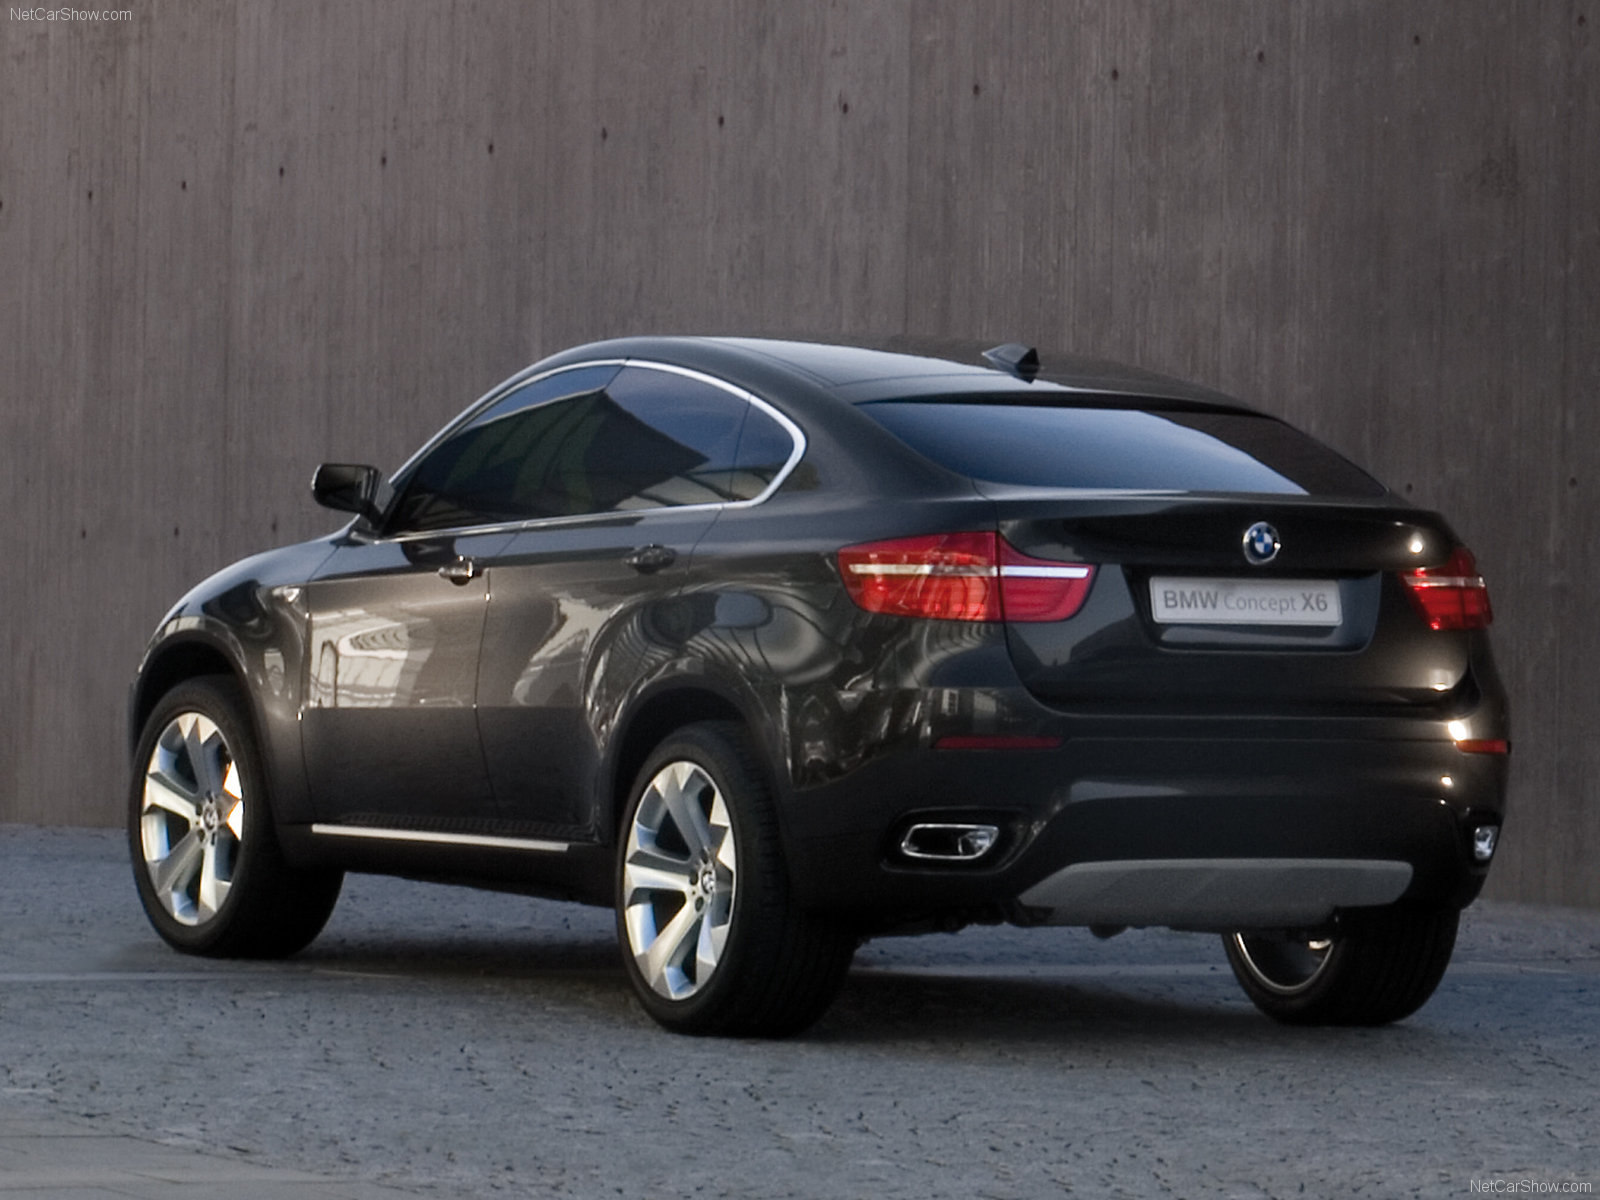 BMW X6 photos - PhotoGallery with 208 pics| CarsBase.com